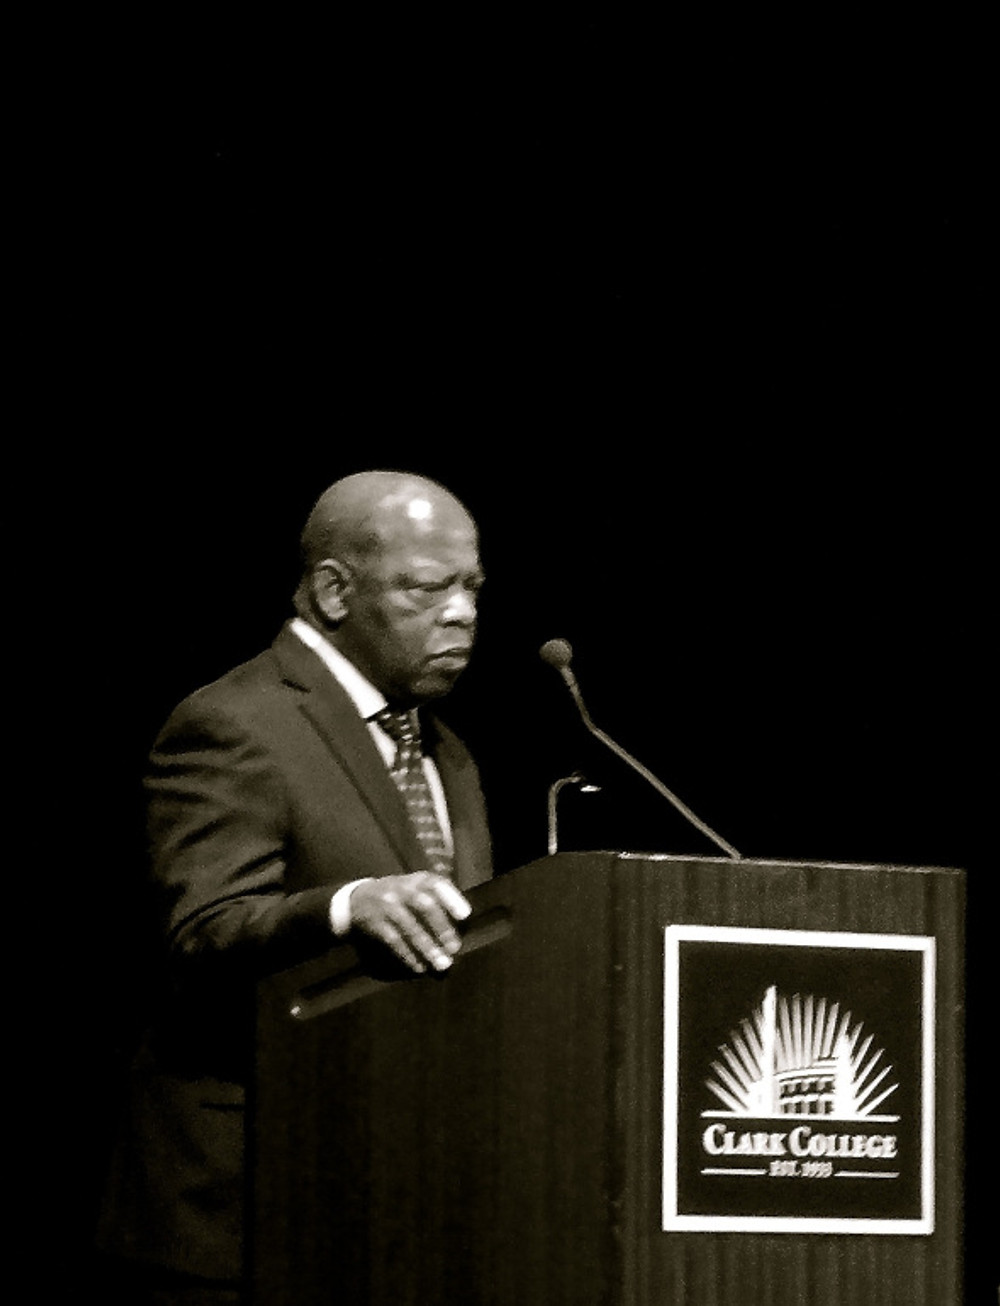 The ultimate surprise was special guest Congressman John Lewis, a legend in the civil rights movement, close friend to Dr. King and a man still . He